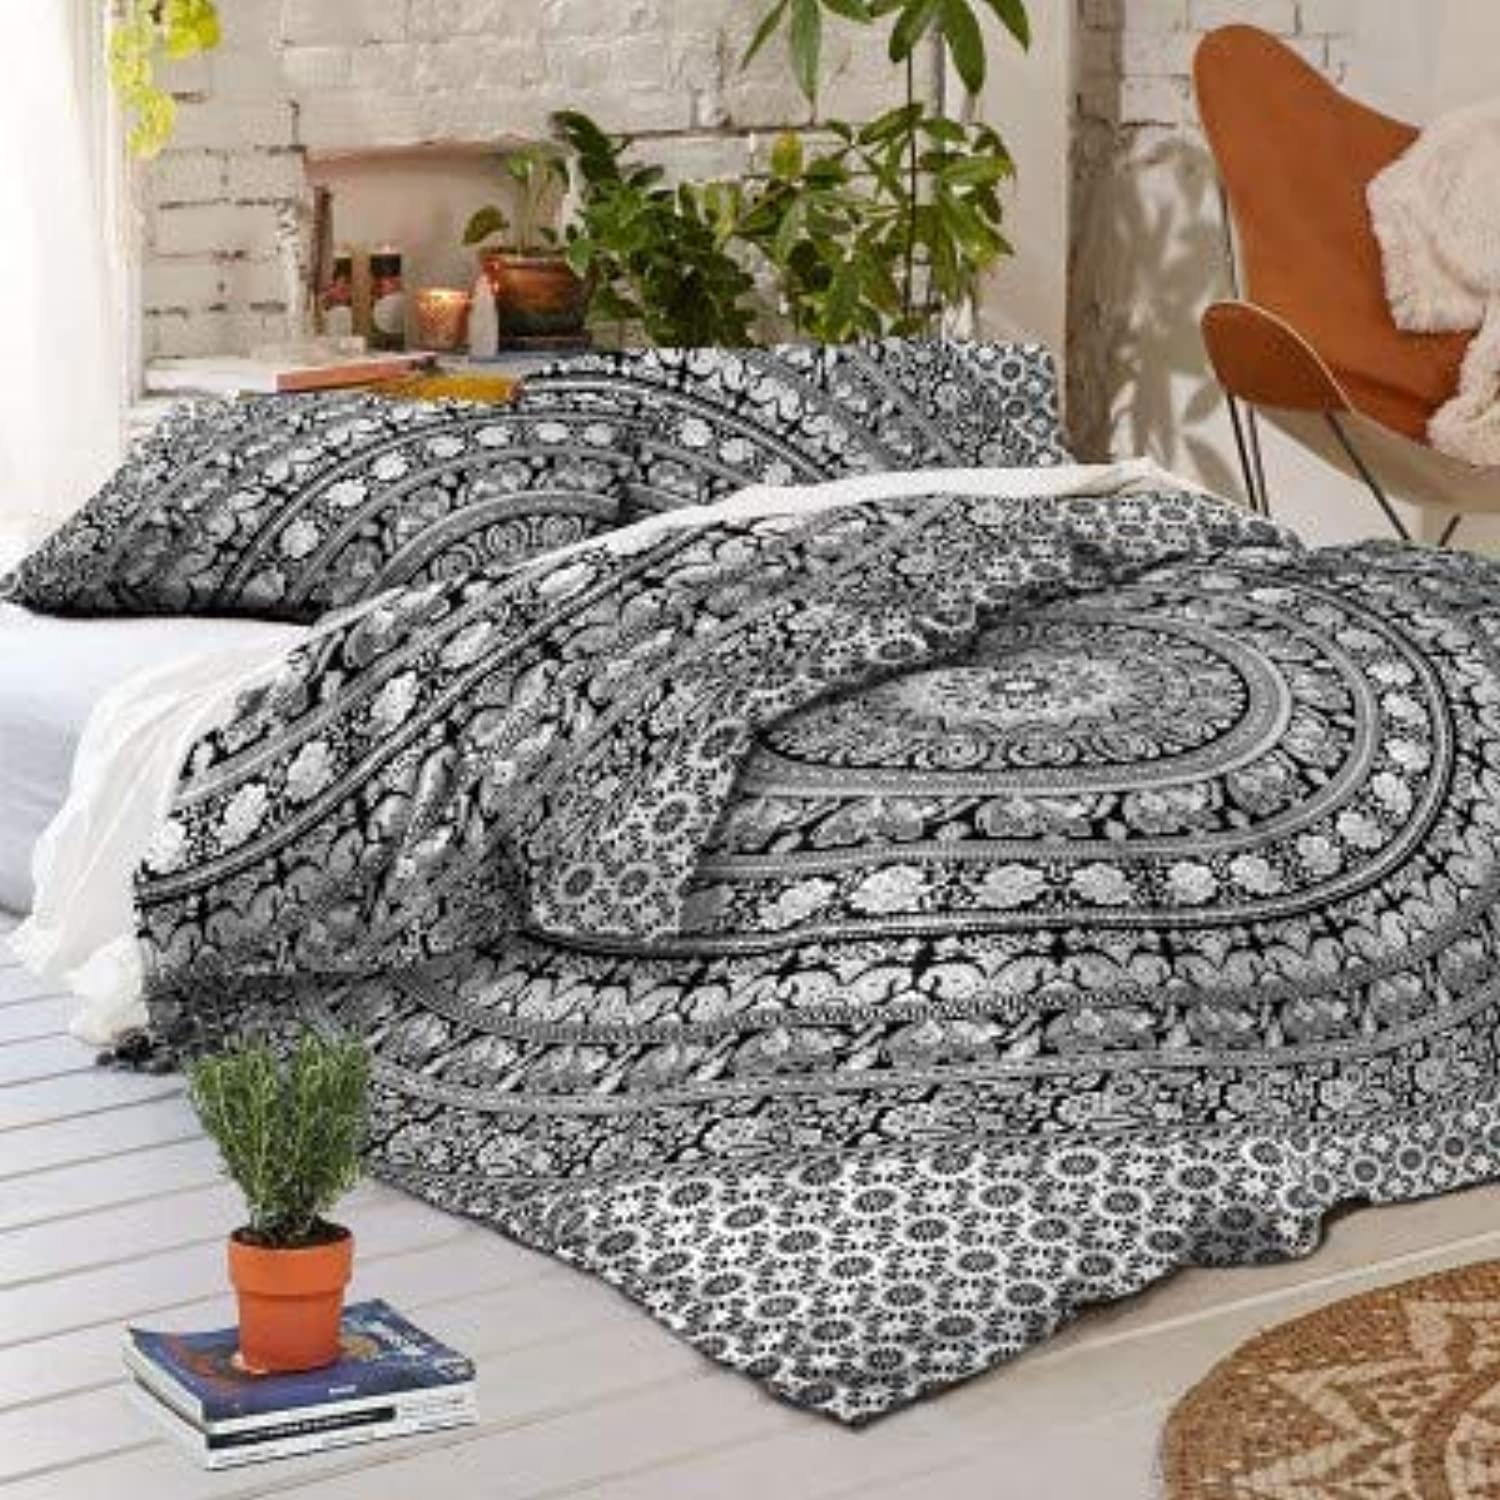 Heyrumbh Handicrafts Tapestry Flower Elephant Mandala Bohemian Reversible Cotton Duvet Cover  Indian Handmade Doona Quilt with 2 Pillow Covers (Black and White, 82 X 92 Inches)